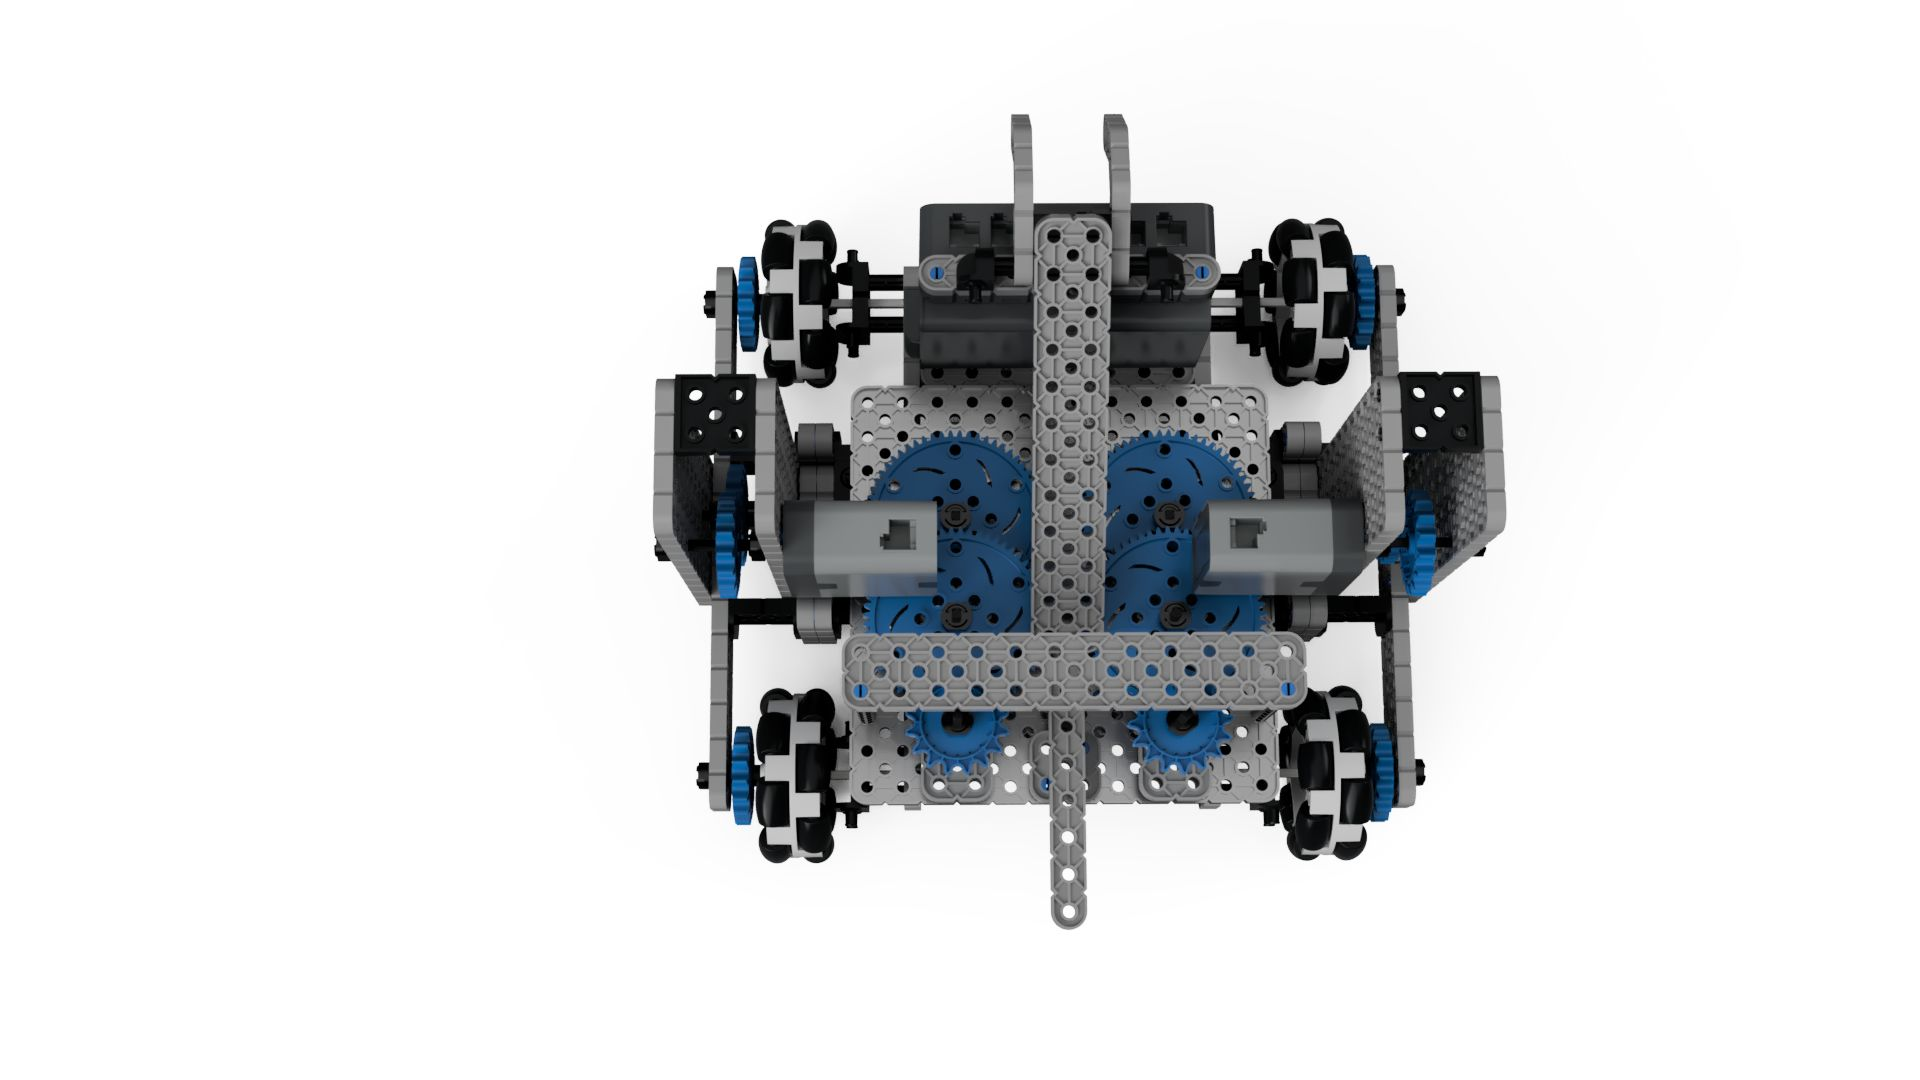 Vex-iq---ball-trigger-robot-2019-jun-05-08-30-10pm-000-customizedview21472915149-png-3500-3500